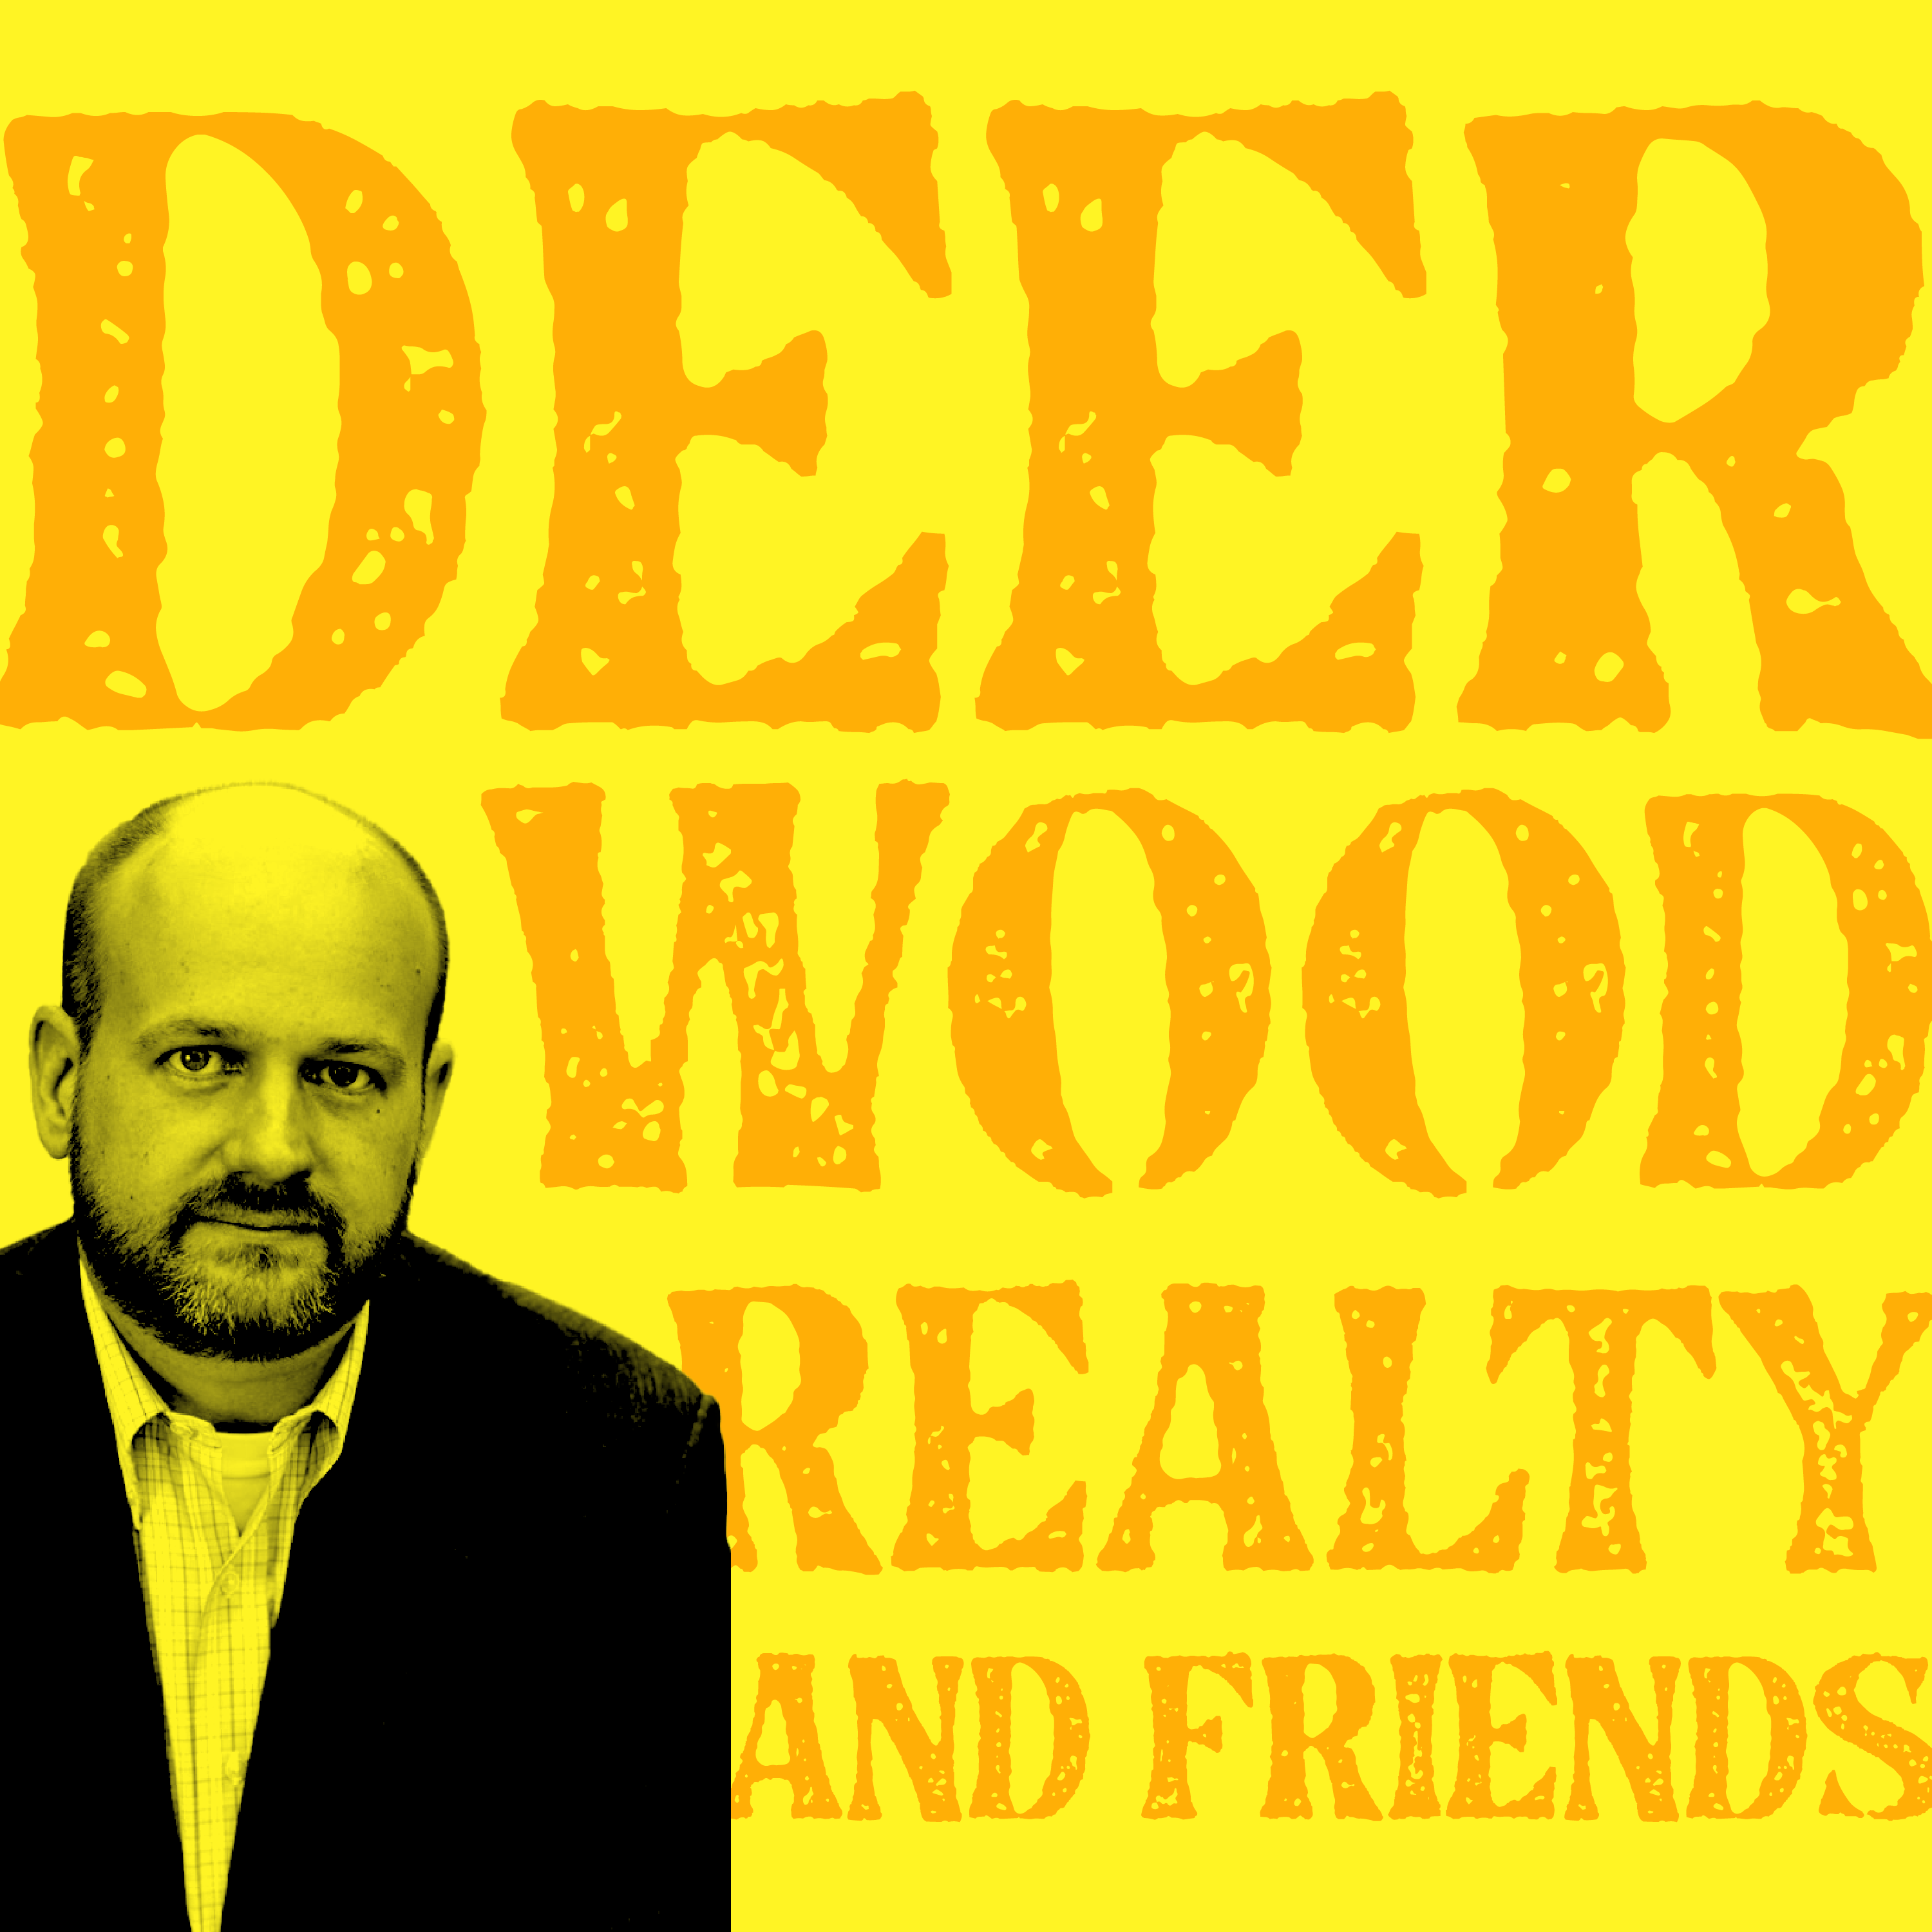 Deerwood Realty and Friends